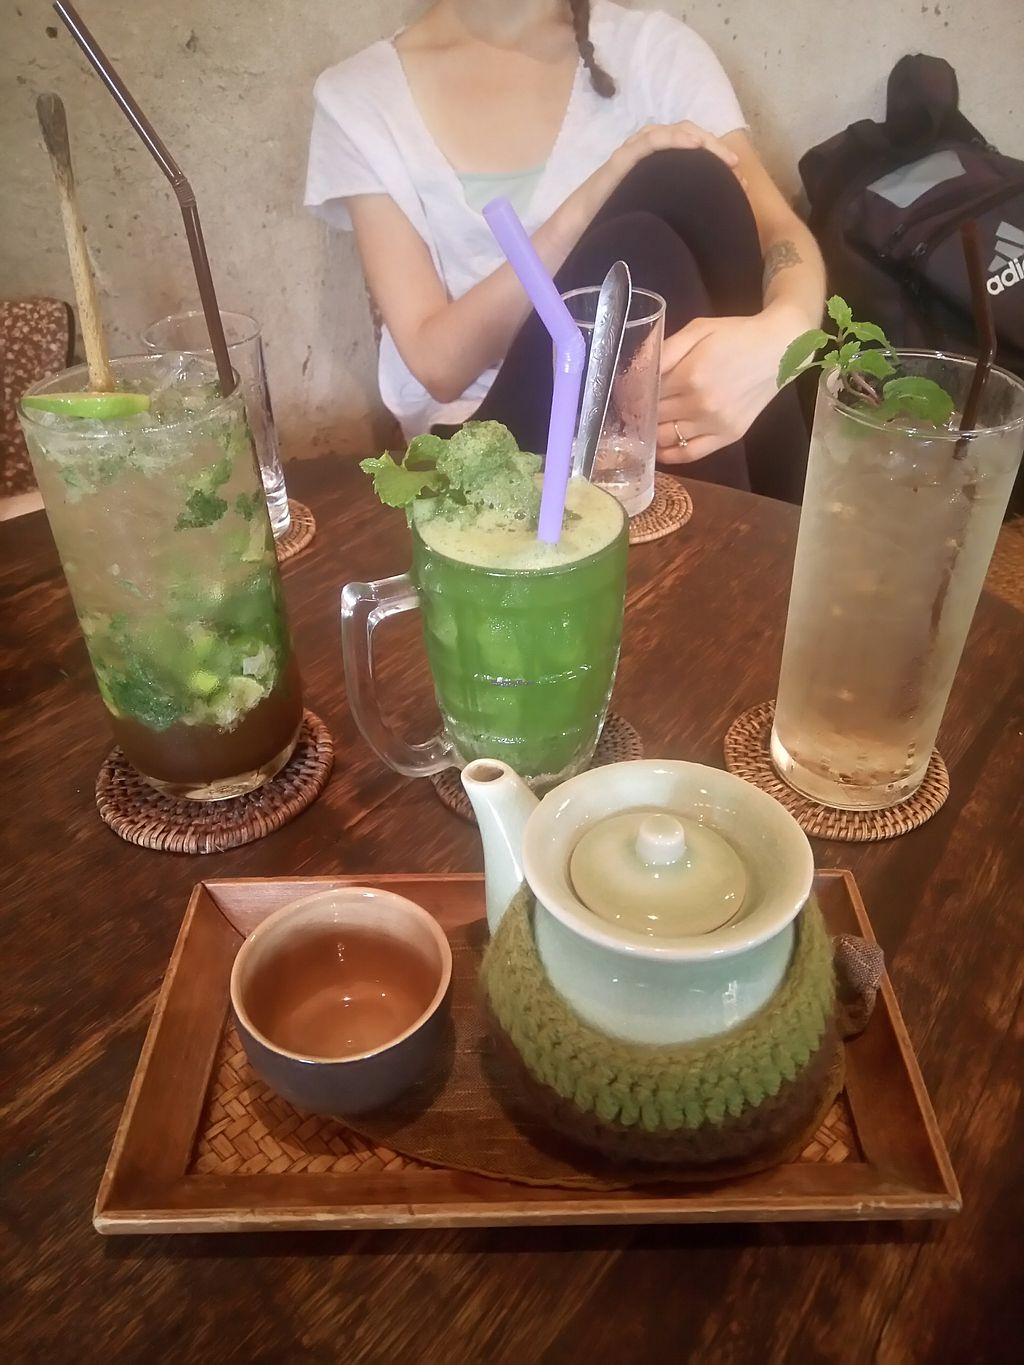 """Photo of Ramon Cafe  by <a href=""""/members/profile/alicus"""">alicus</a> <br/>Drinks! <br/> February 17, 2018  - <a href='/contact/abuse/image/90714/360373'>Report</a>"""